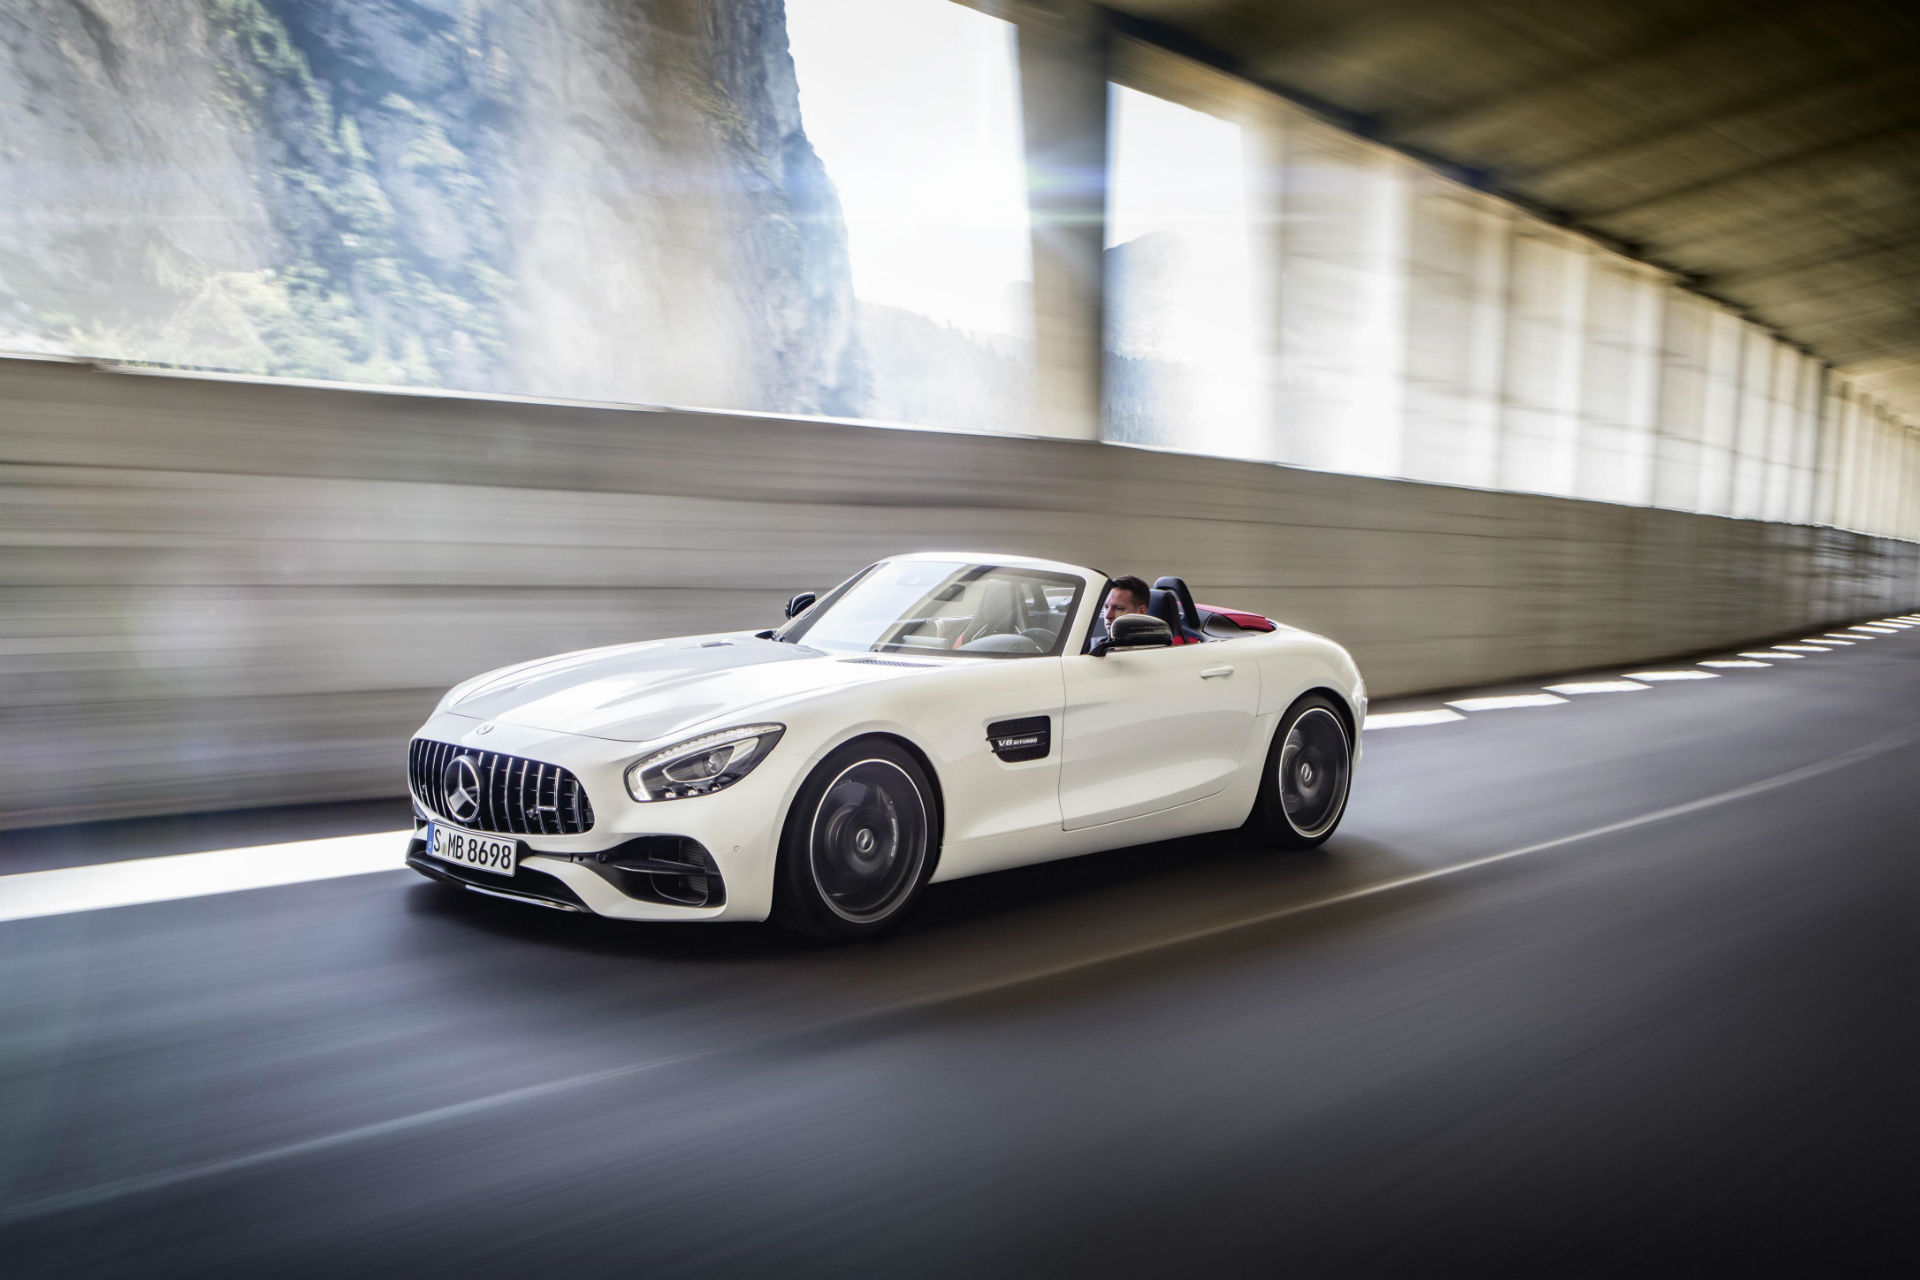 Mercedes Amg Gt Roadster Editions Released Carwitter